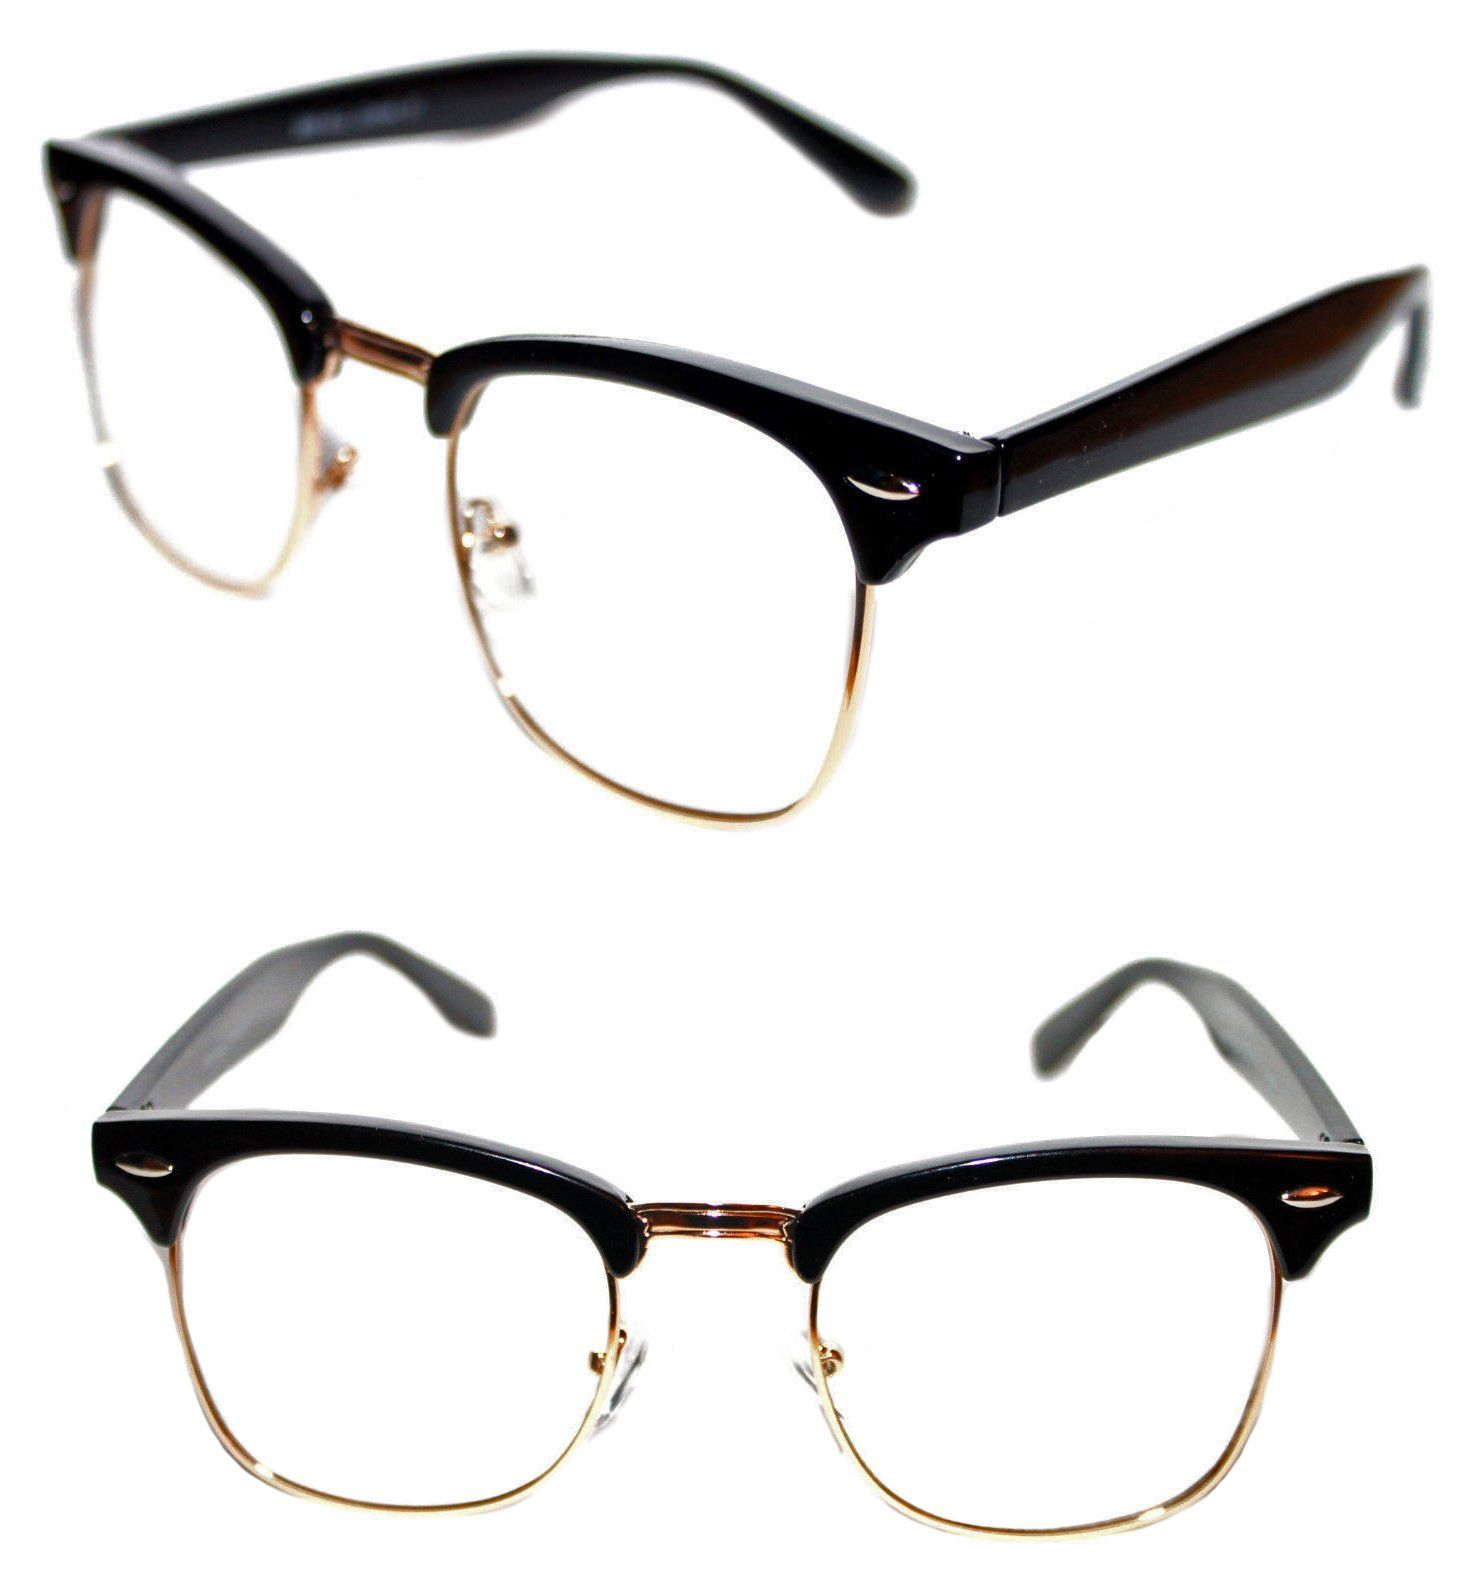 62b222f1a Men's Women's Black Gold Frame Half Shell Clubmaster Clear Lens Glasses Soho